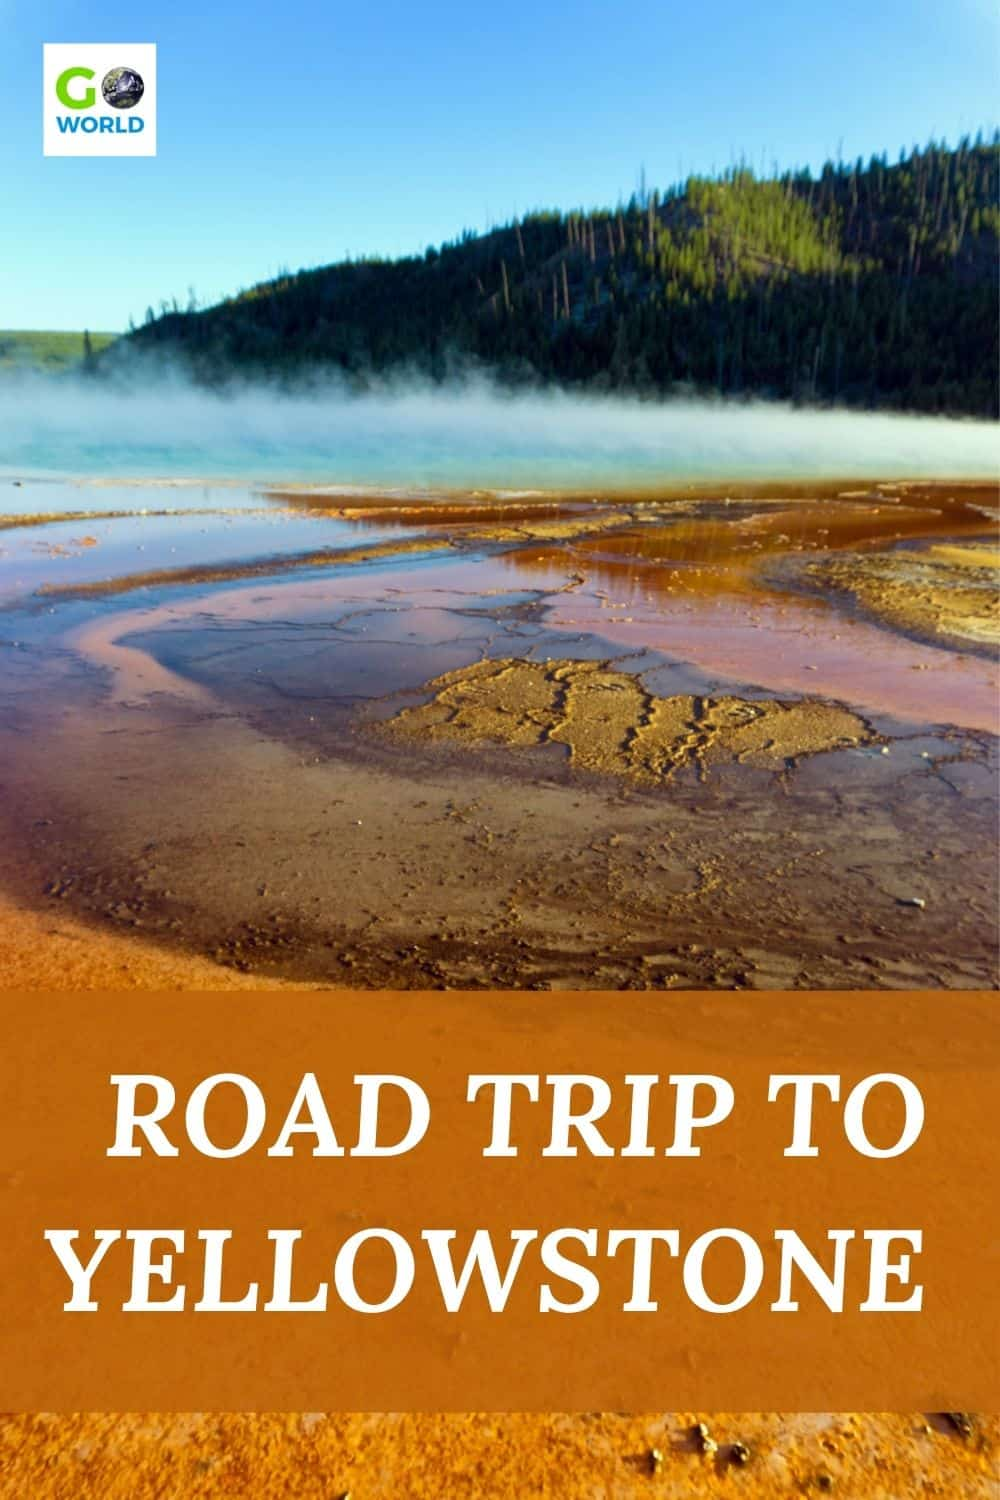 A story of one person's cautious return to travel with a road trip to Yellowstone National Park from Dallas Texas. #YellowstoneNP #RoadtripUSA #Yellowstoneroadtrip